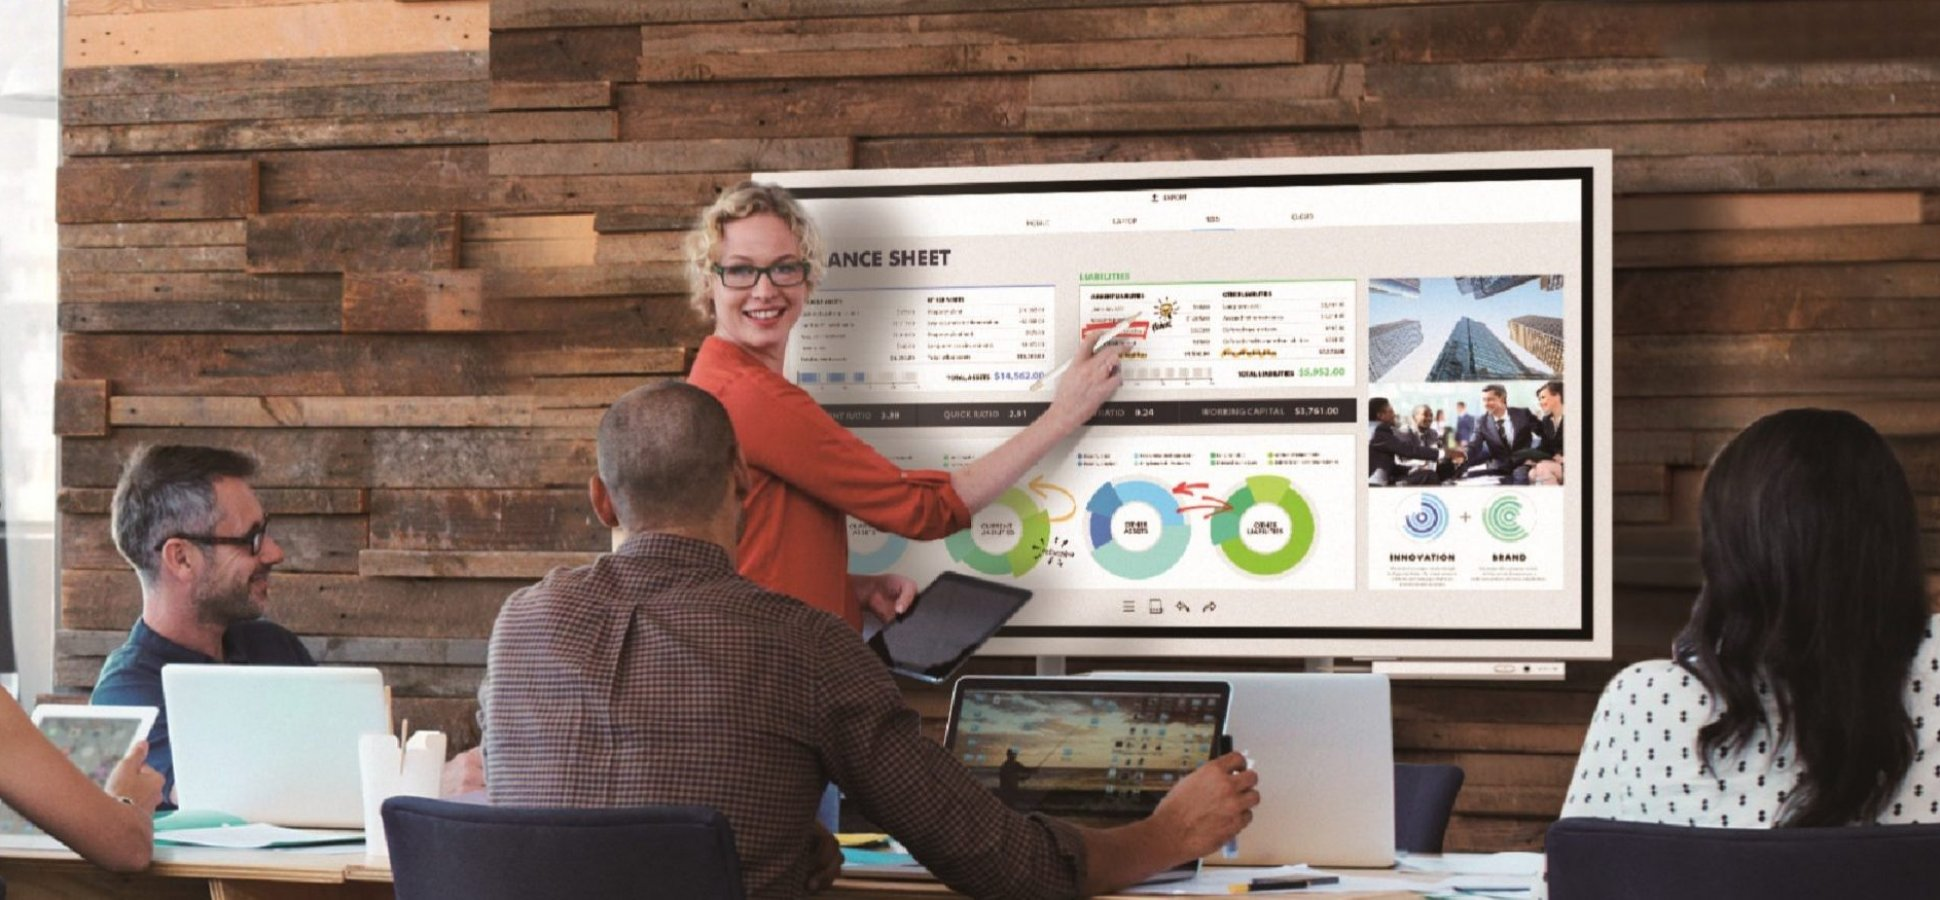 Productivity Gurus Only: You'll Flip Over This Digital Whiteboard